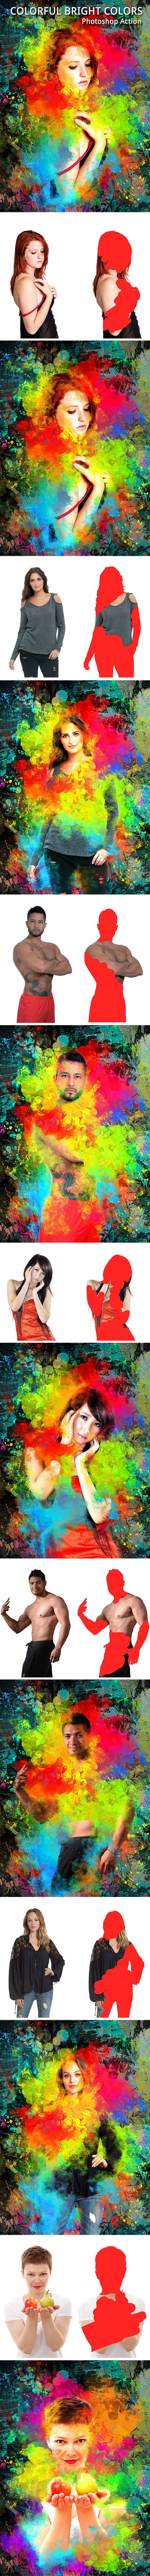 Colorful Bright Colors Photoshop Action by denis154 Colorful Bright Colors Photoshop Action:Action include your Files: Action (ATN) Brushes (ABR) Pattern (PAT)聽聽 聽 Instruction for t